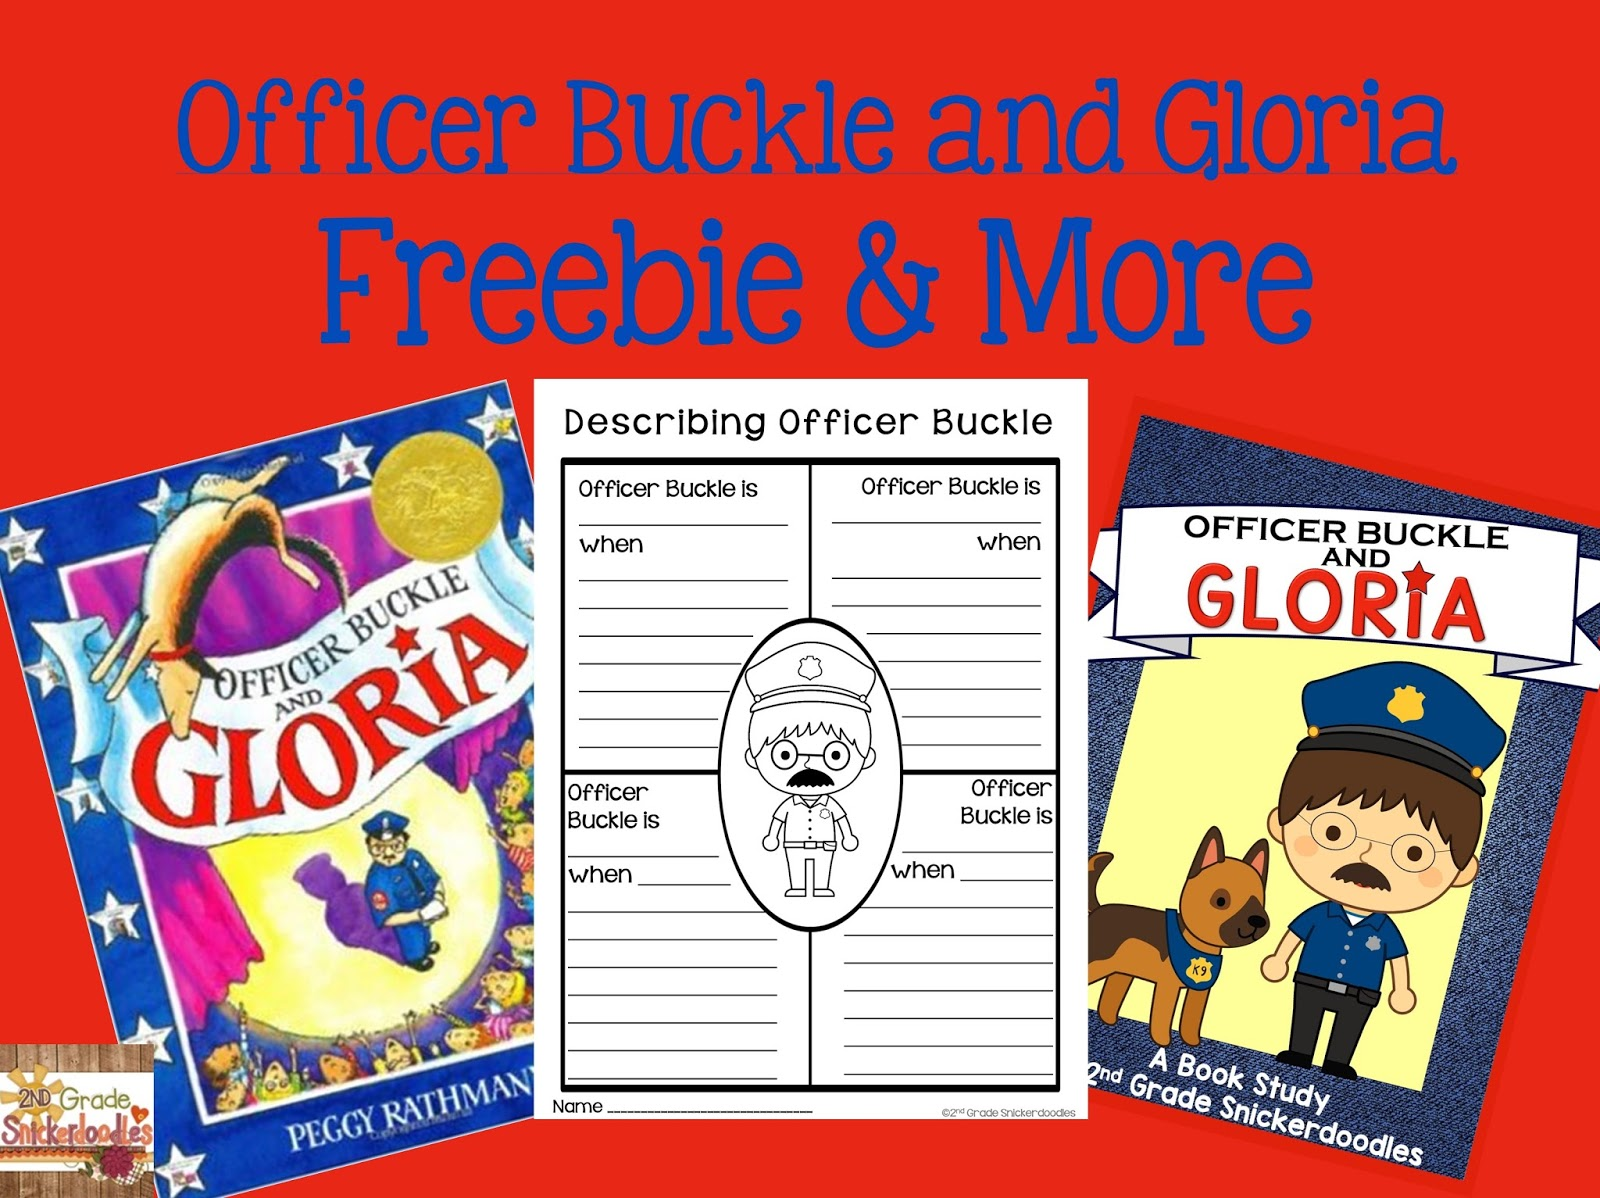 2nd Grade Snickerdoodles Officer Buckle And Gloria